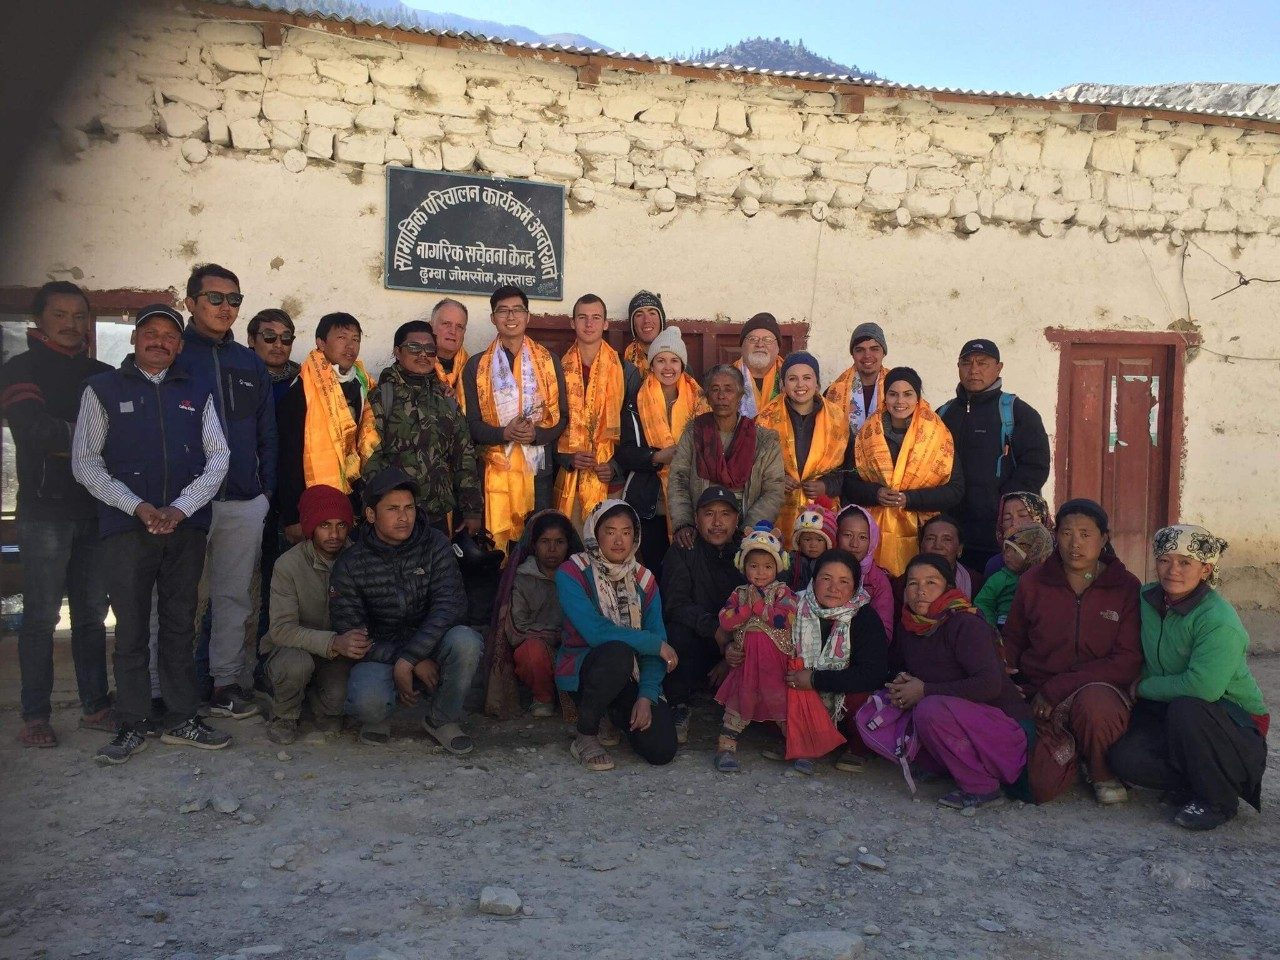 VT's Service Without Borders team (Winter of 2017-18) with villagers of Dhumba. Photo submitted by Mark Shepheard.